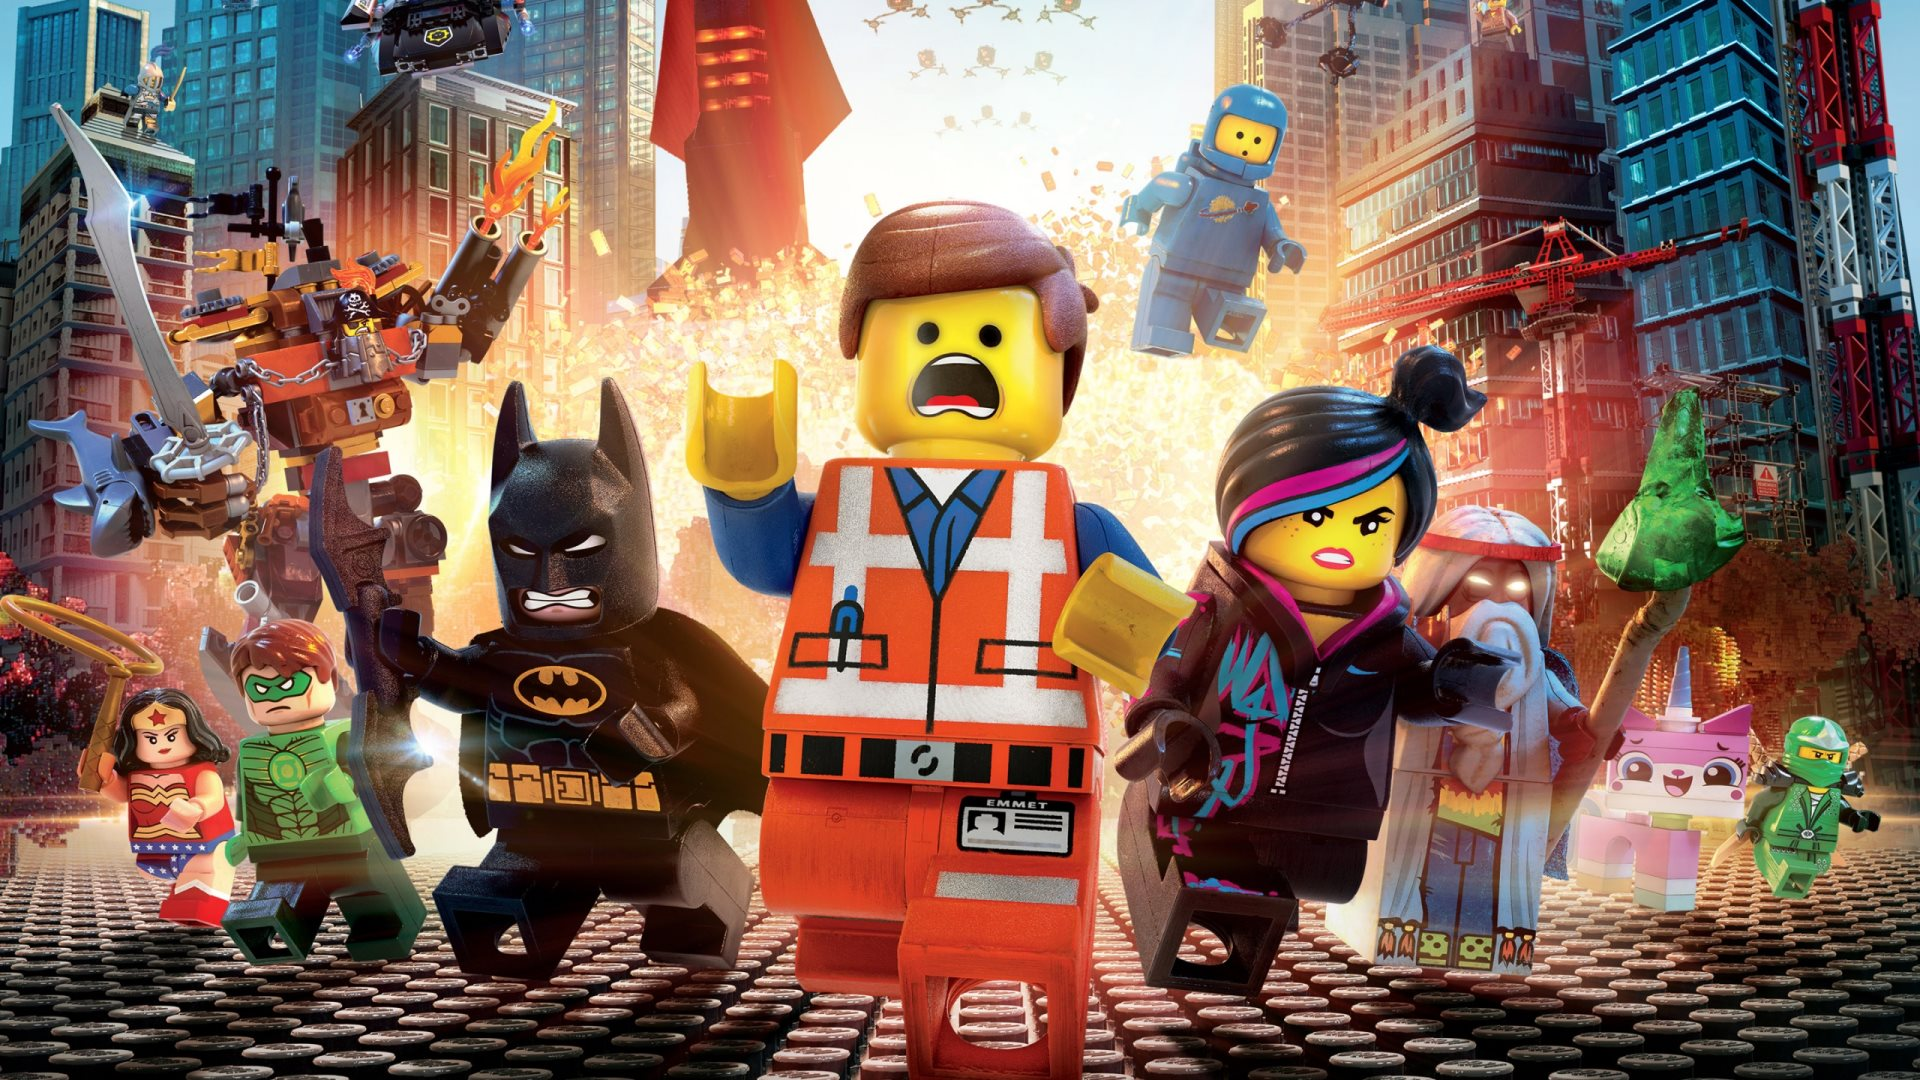 Lego Movie Wallpaper HD